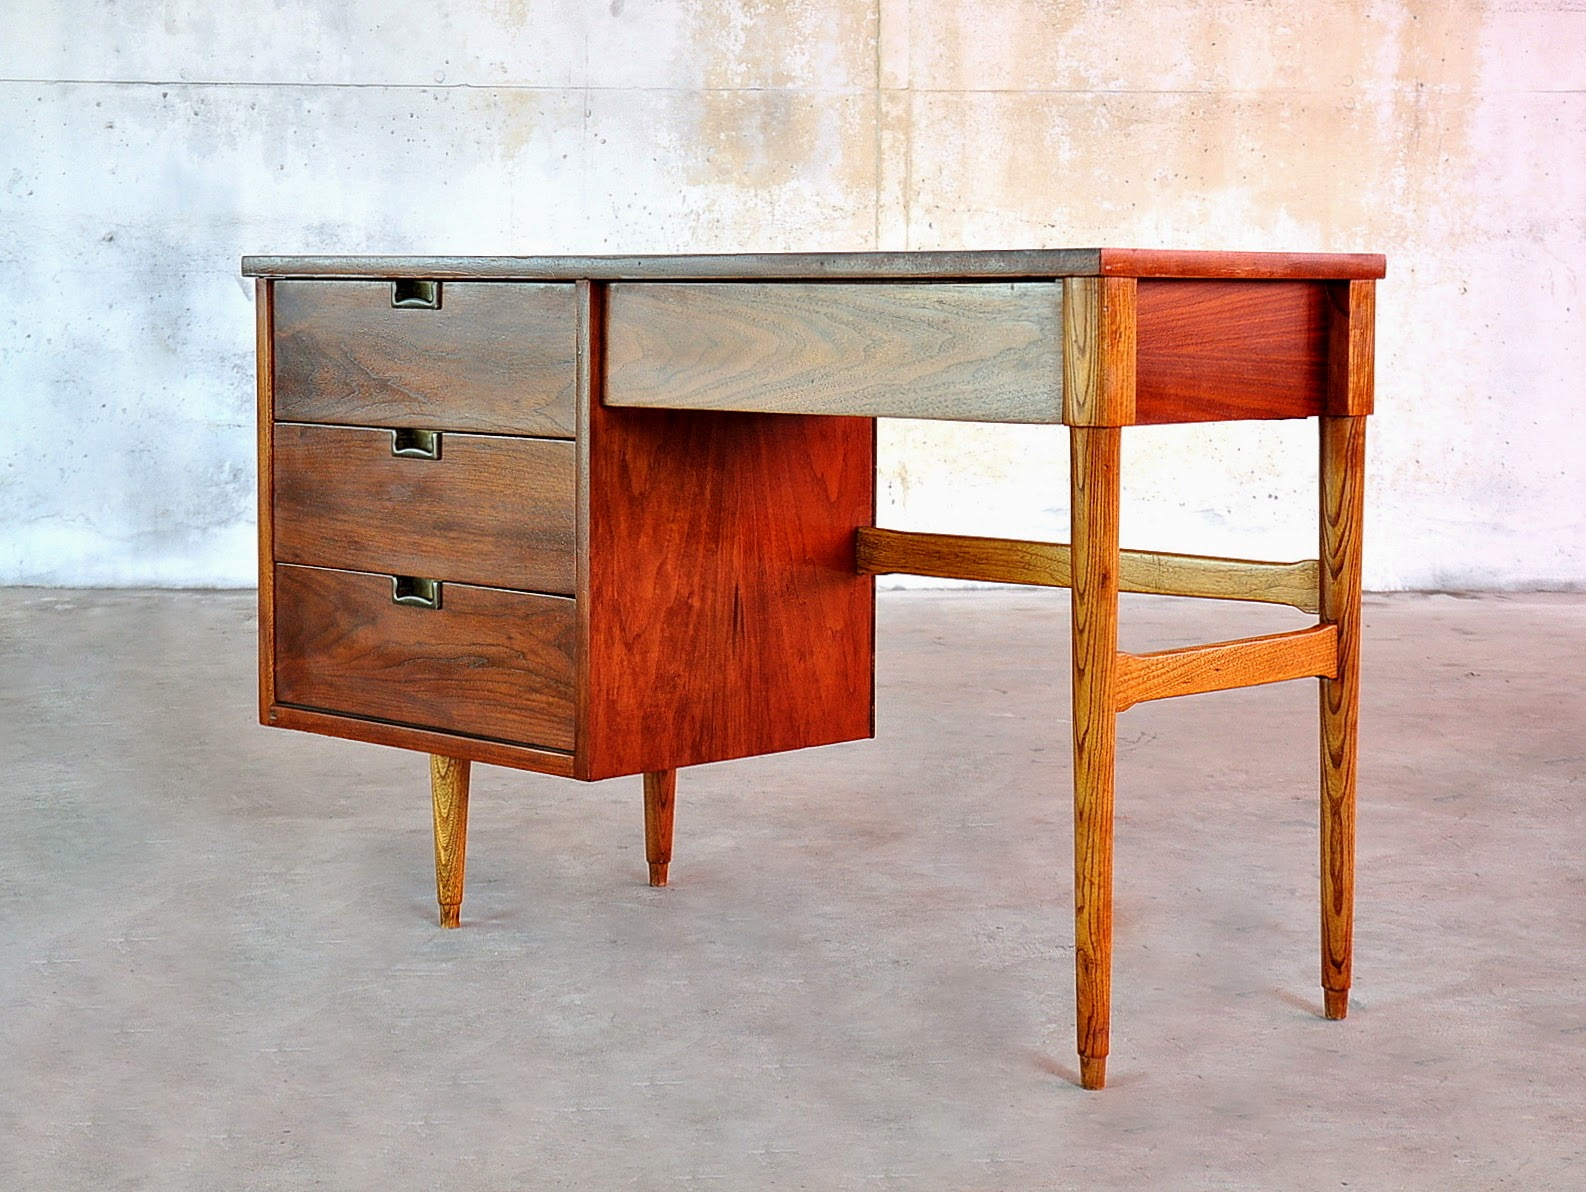 Modern Desks Select Modern: Mid Century Modern Desk Or Vanity Table